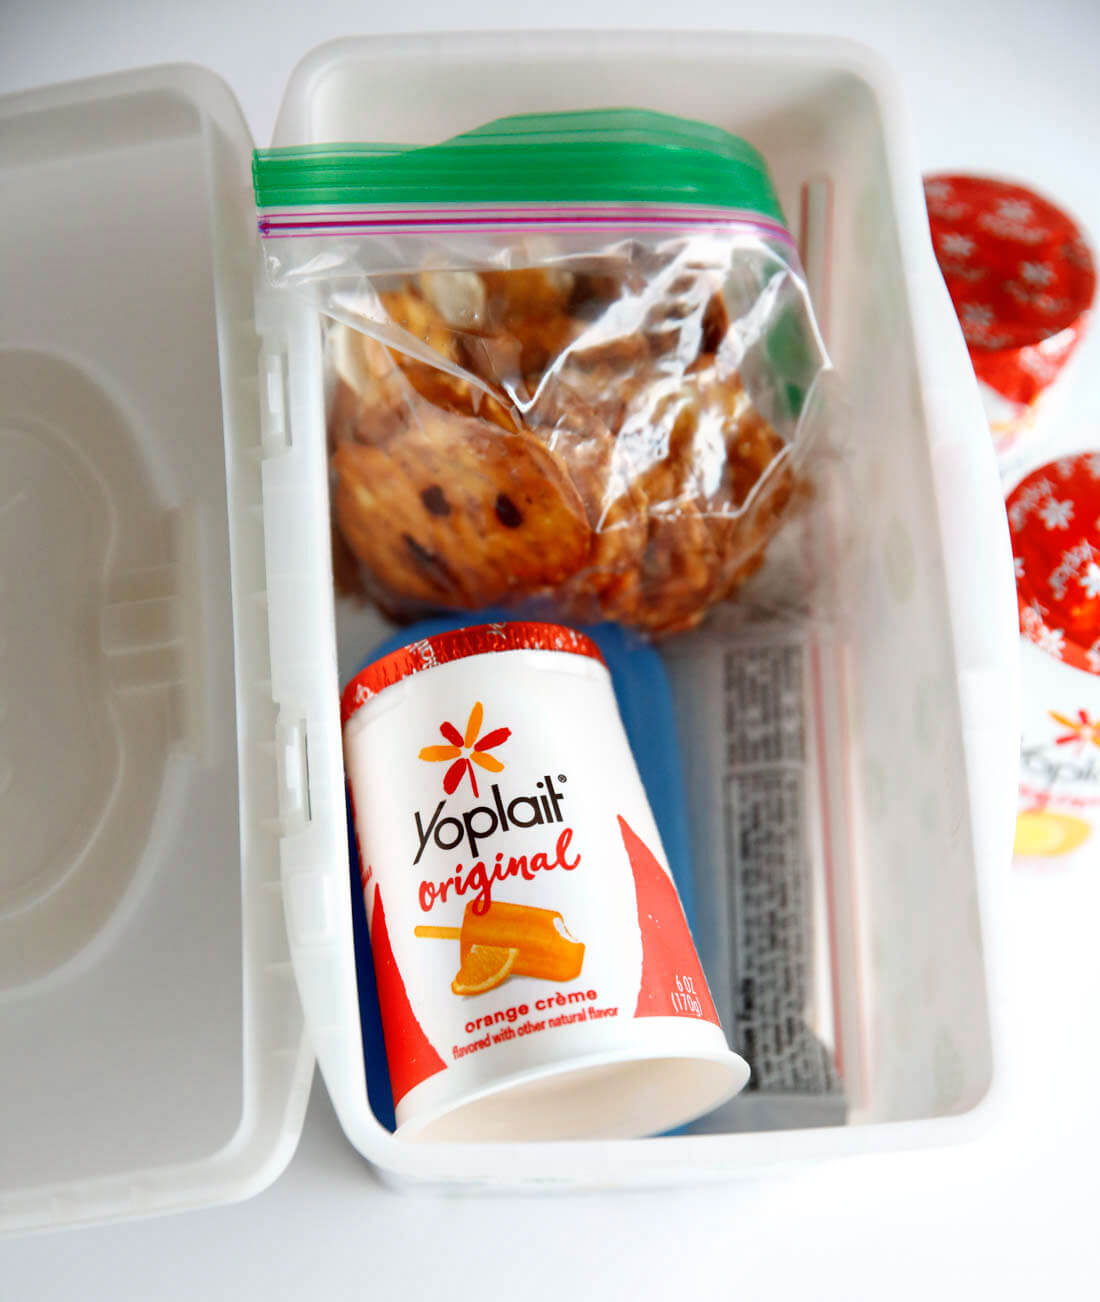 Yoplait Yogurt yogurt bites for Spring Break Road Trip Hacks via www.thirtyhandmadedays.com